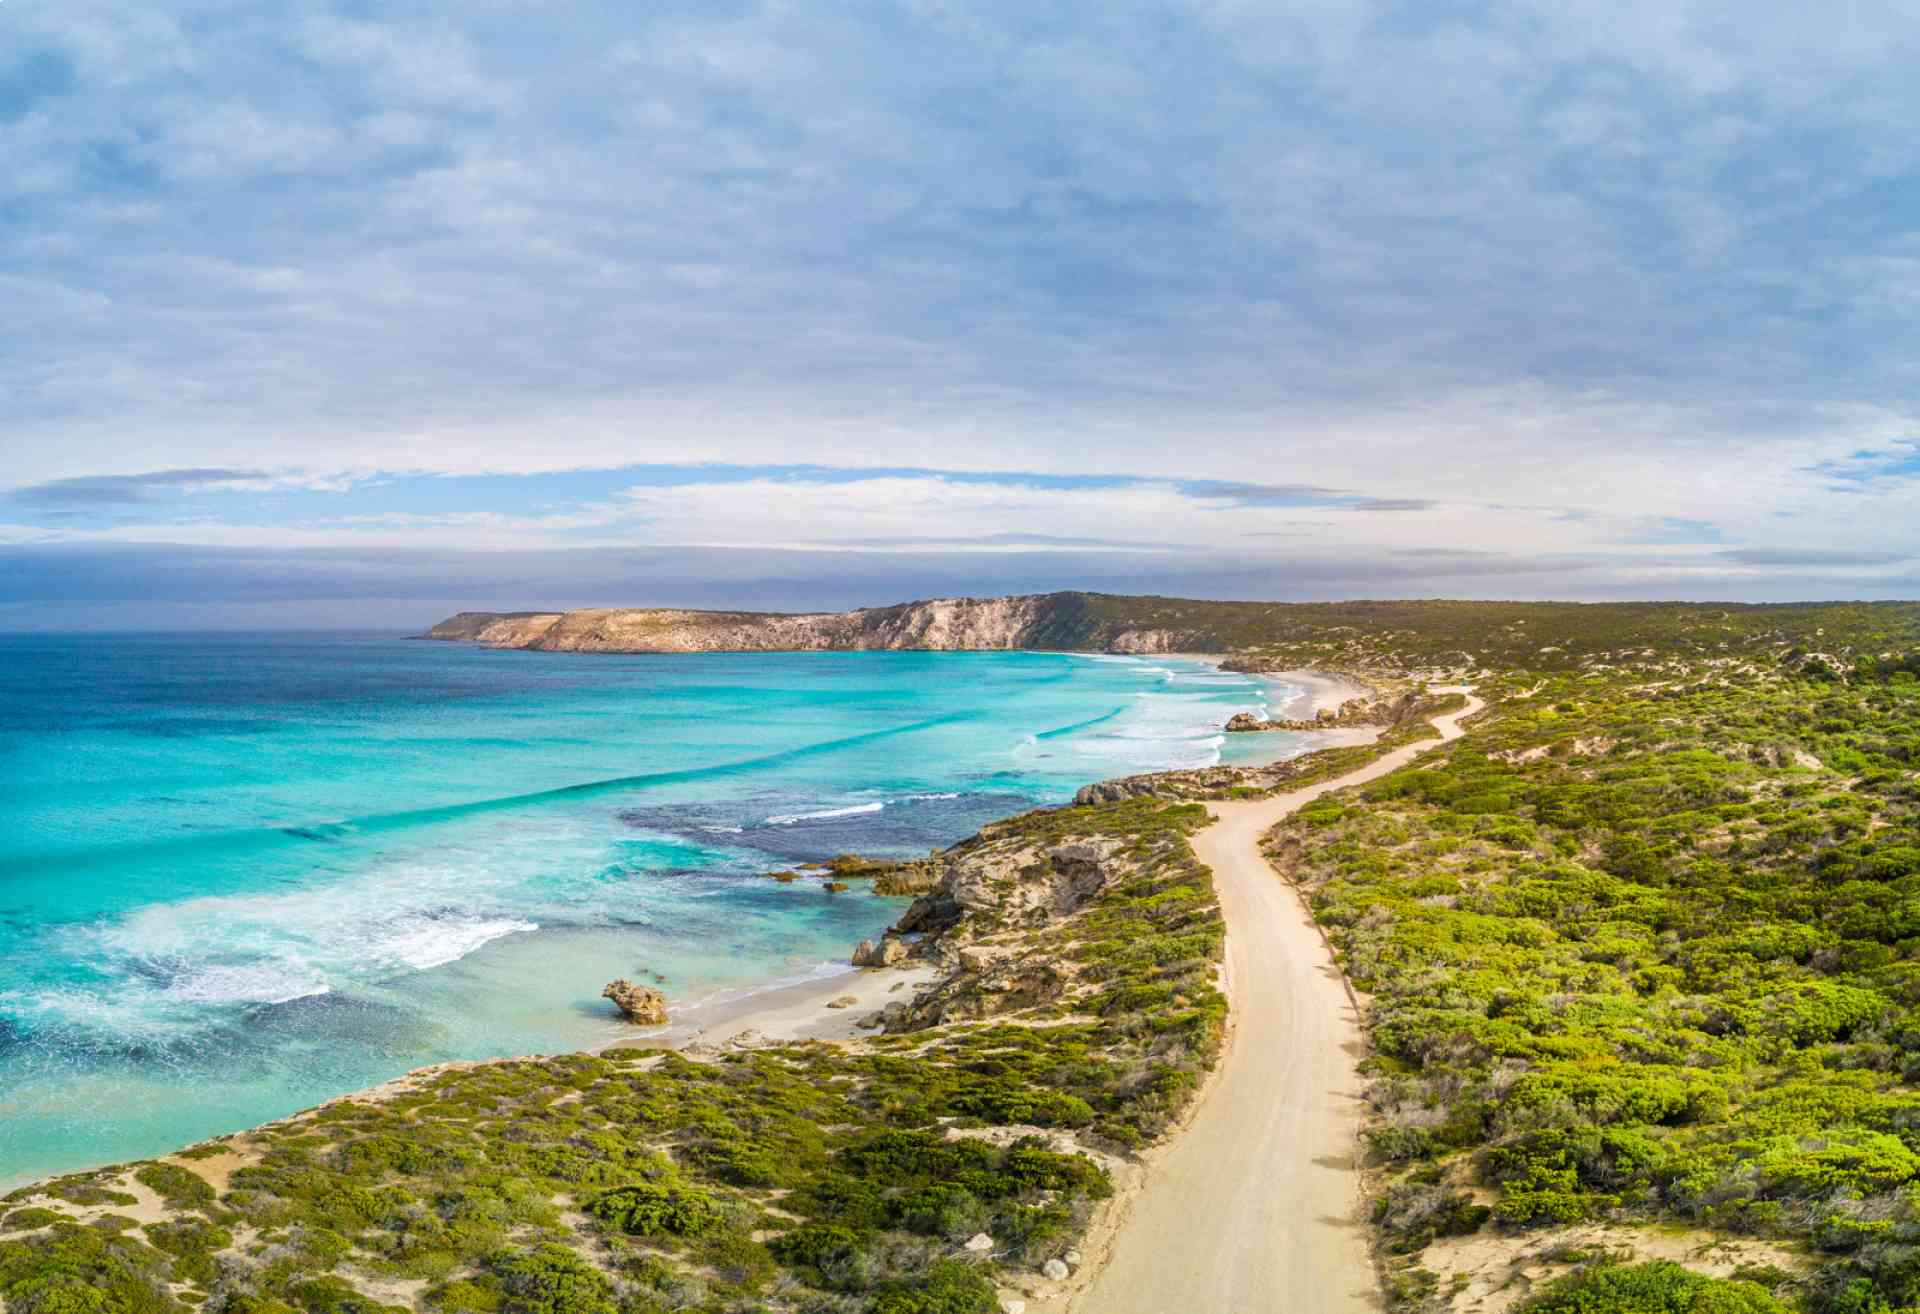 Pennington Bay, Kangaroo Island by Isaac Forman, South Australian Tourism Commission